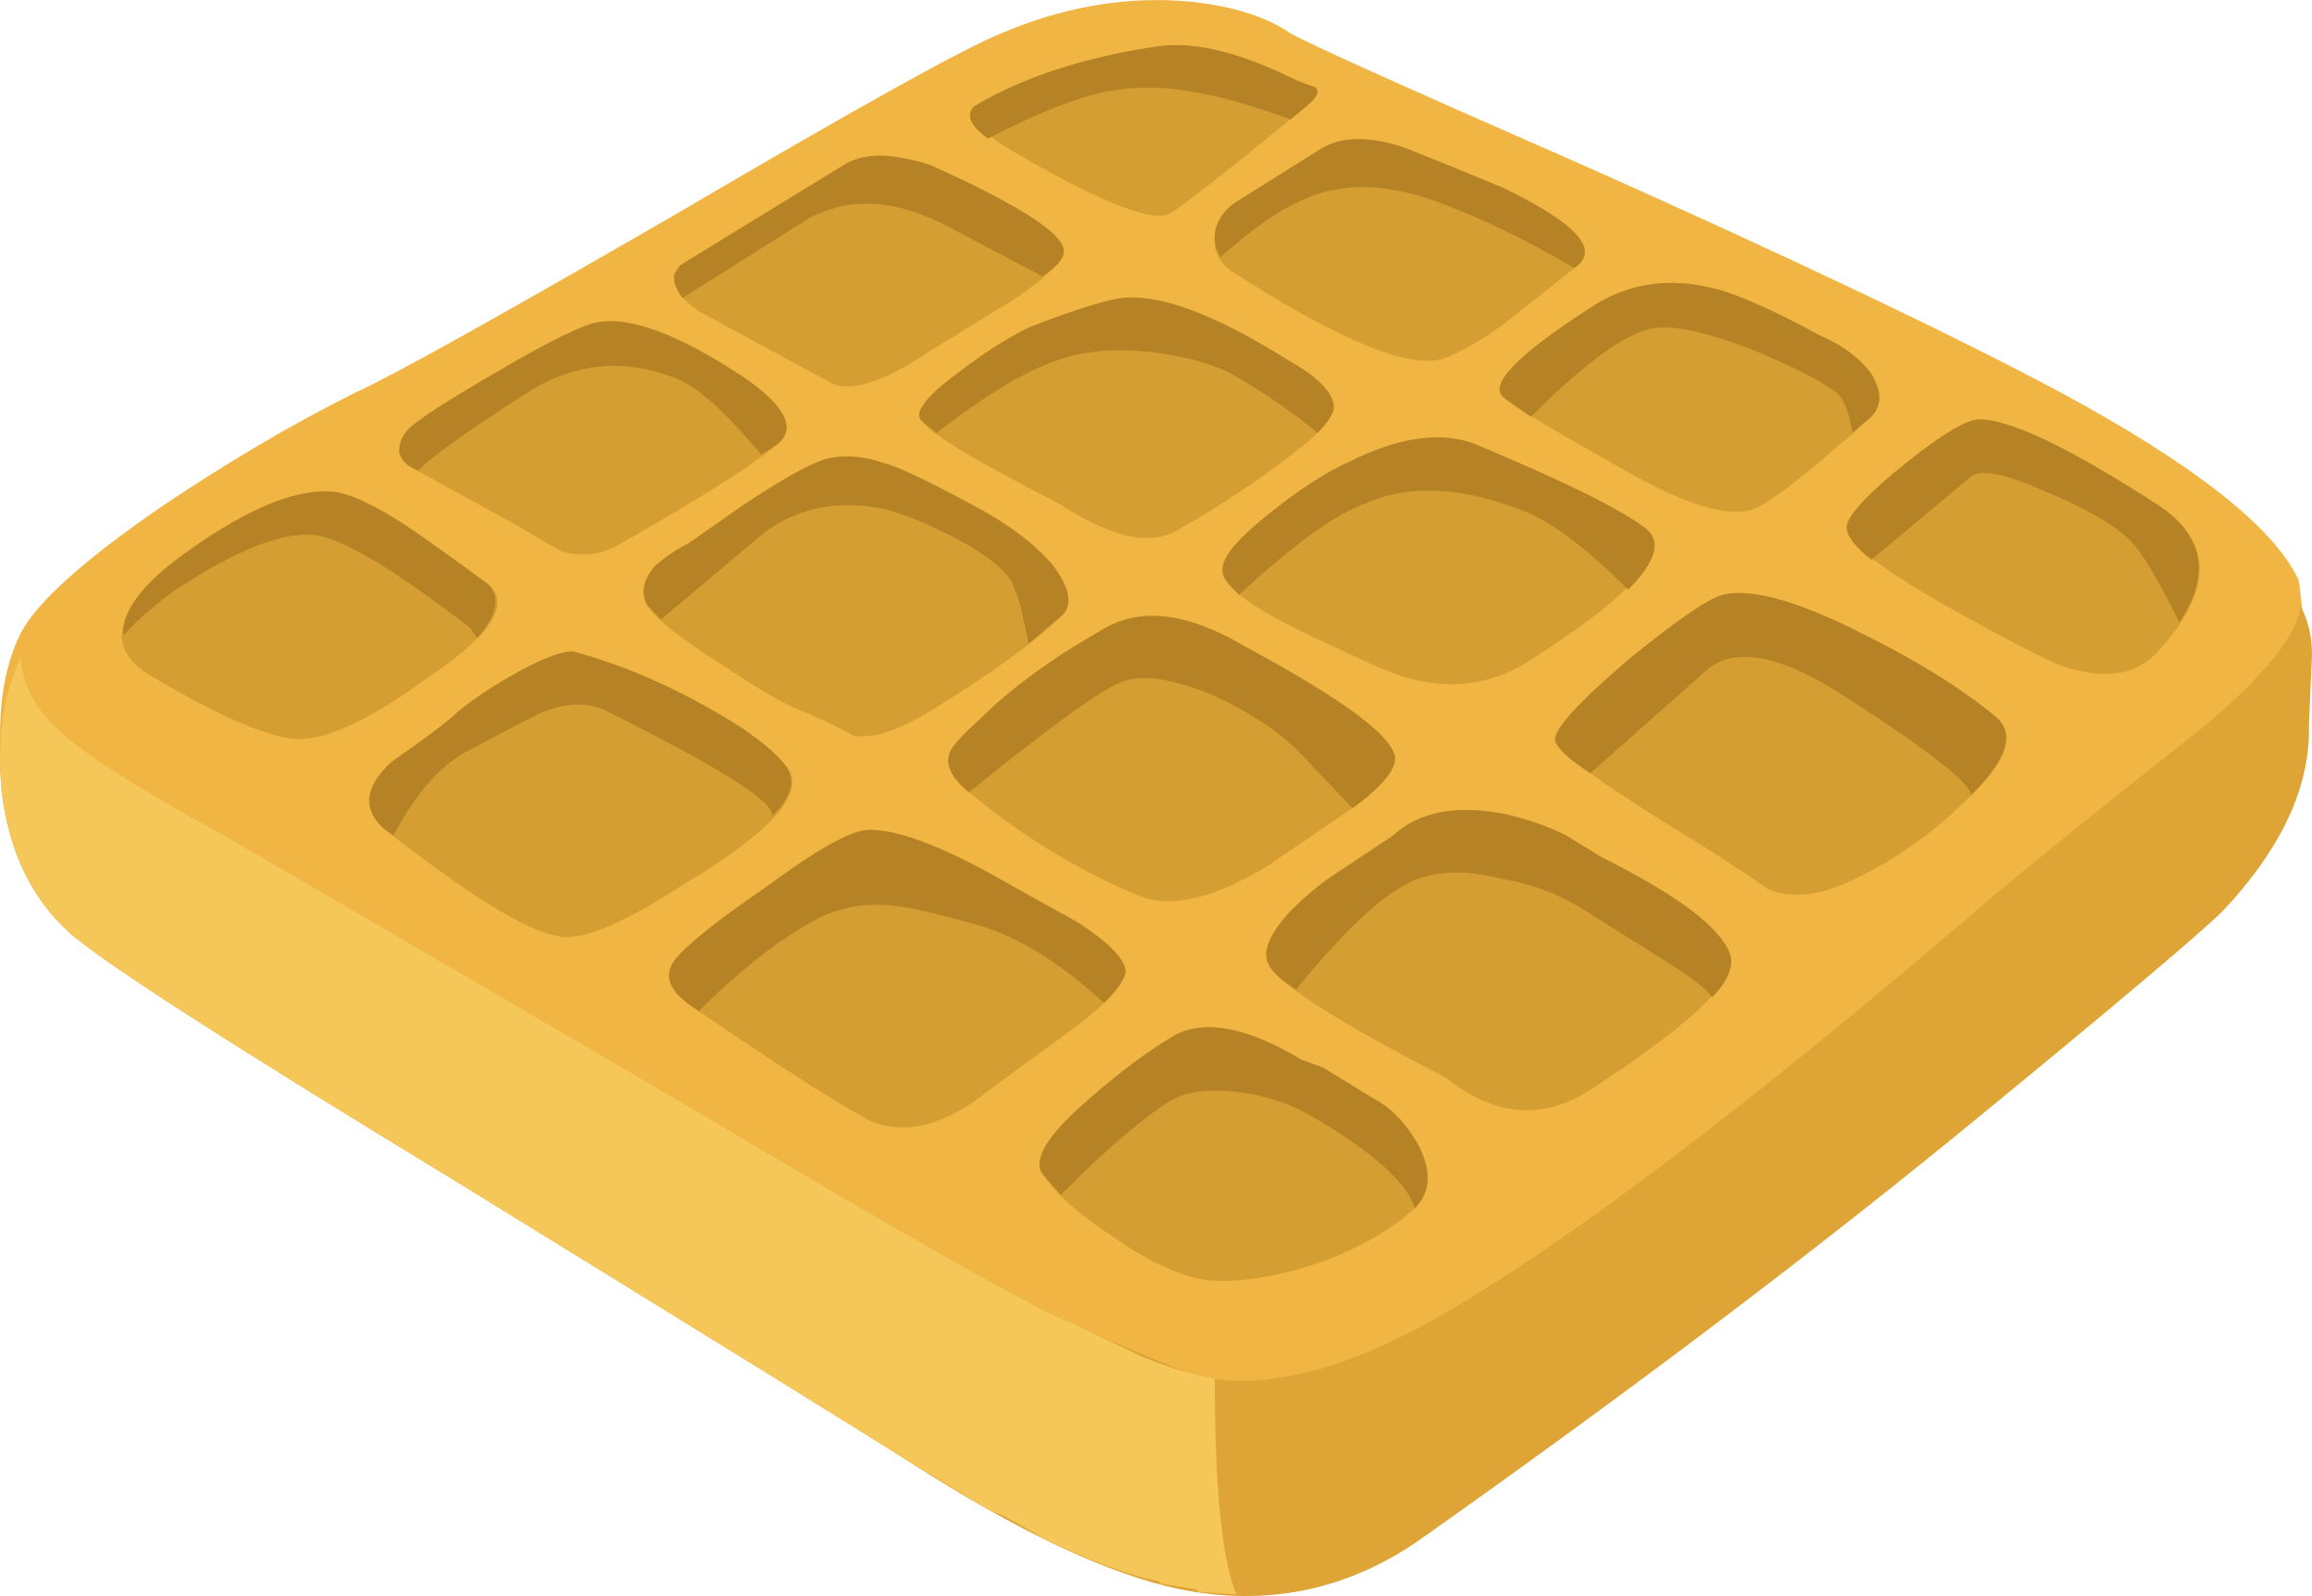 Waffle clipart small, Waffle small Transparent FREE for.